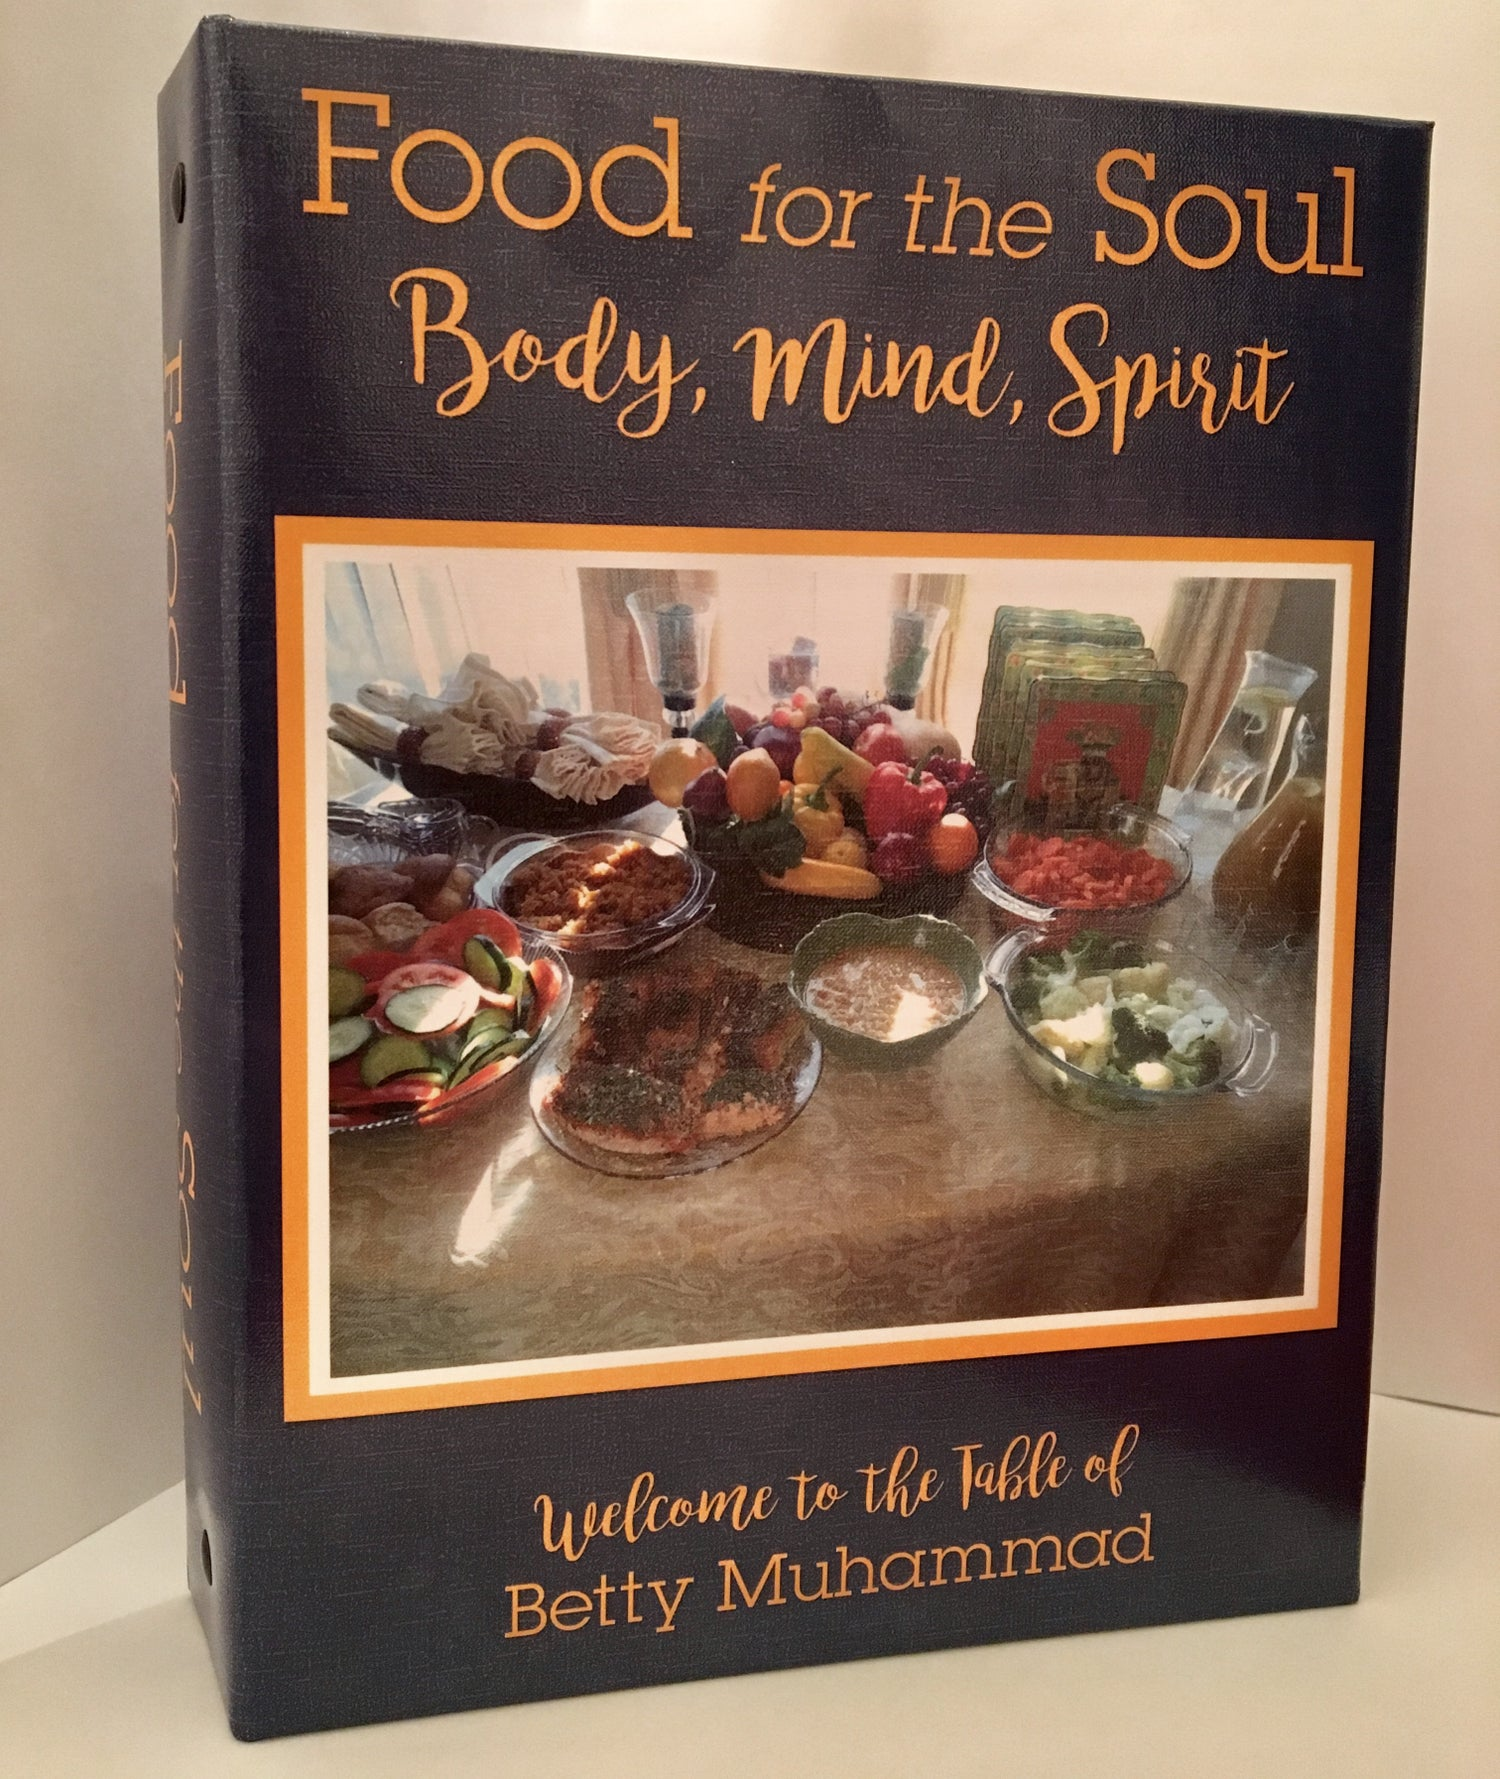 Image of Food for the Soul: Body, Mind, Spirit